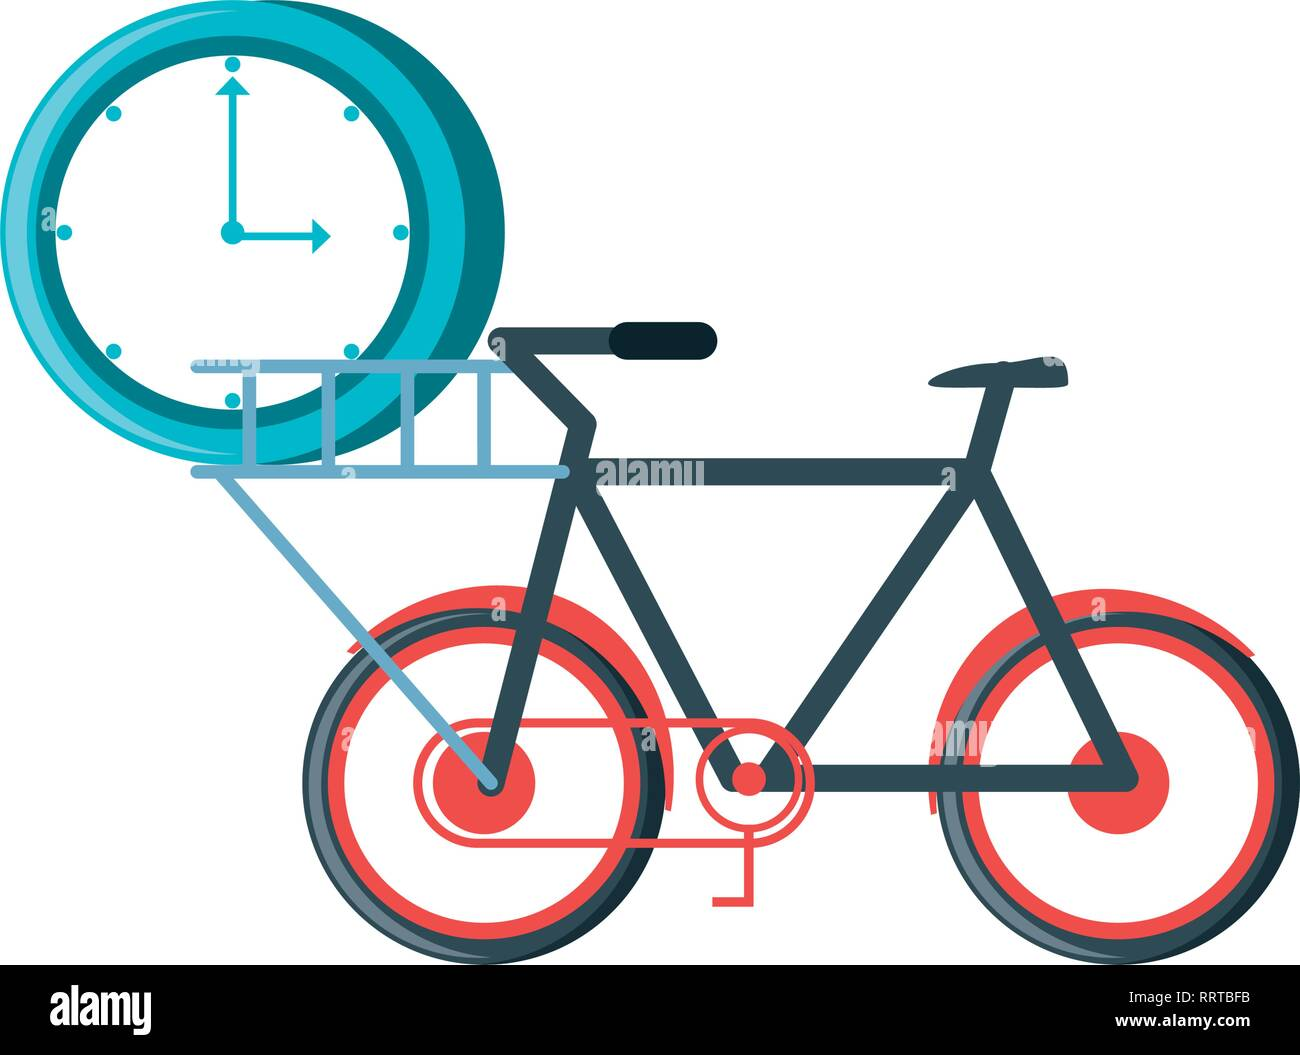 bicycle vehicle with clock time vector illustration design - Stock Vector